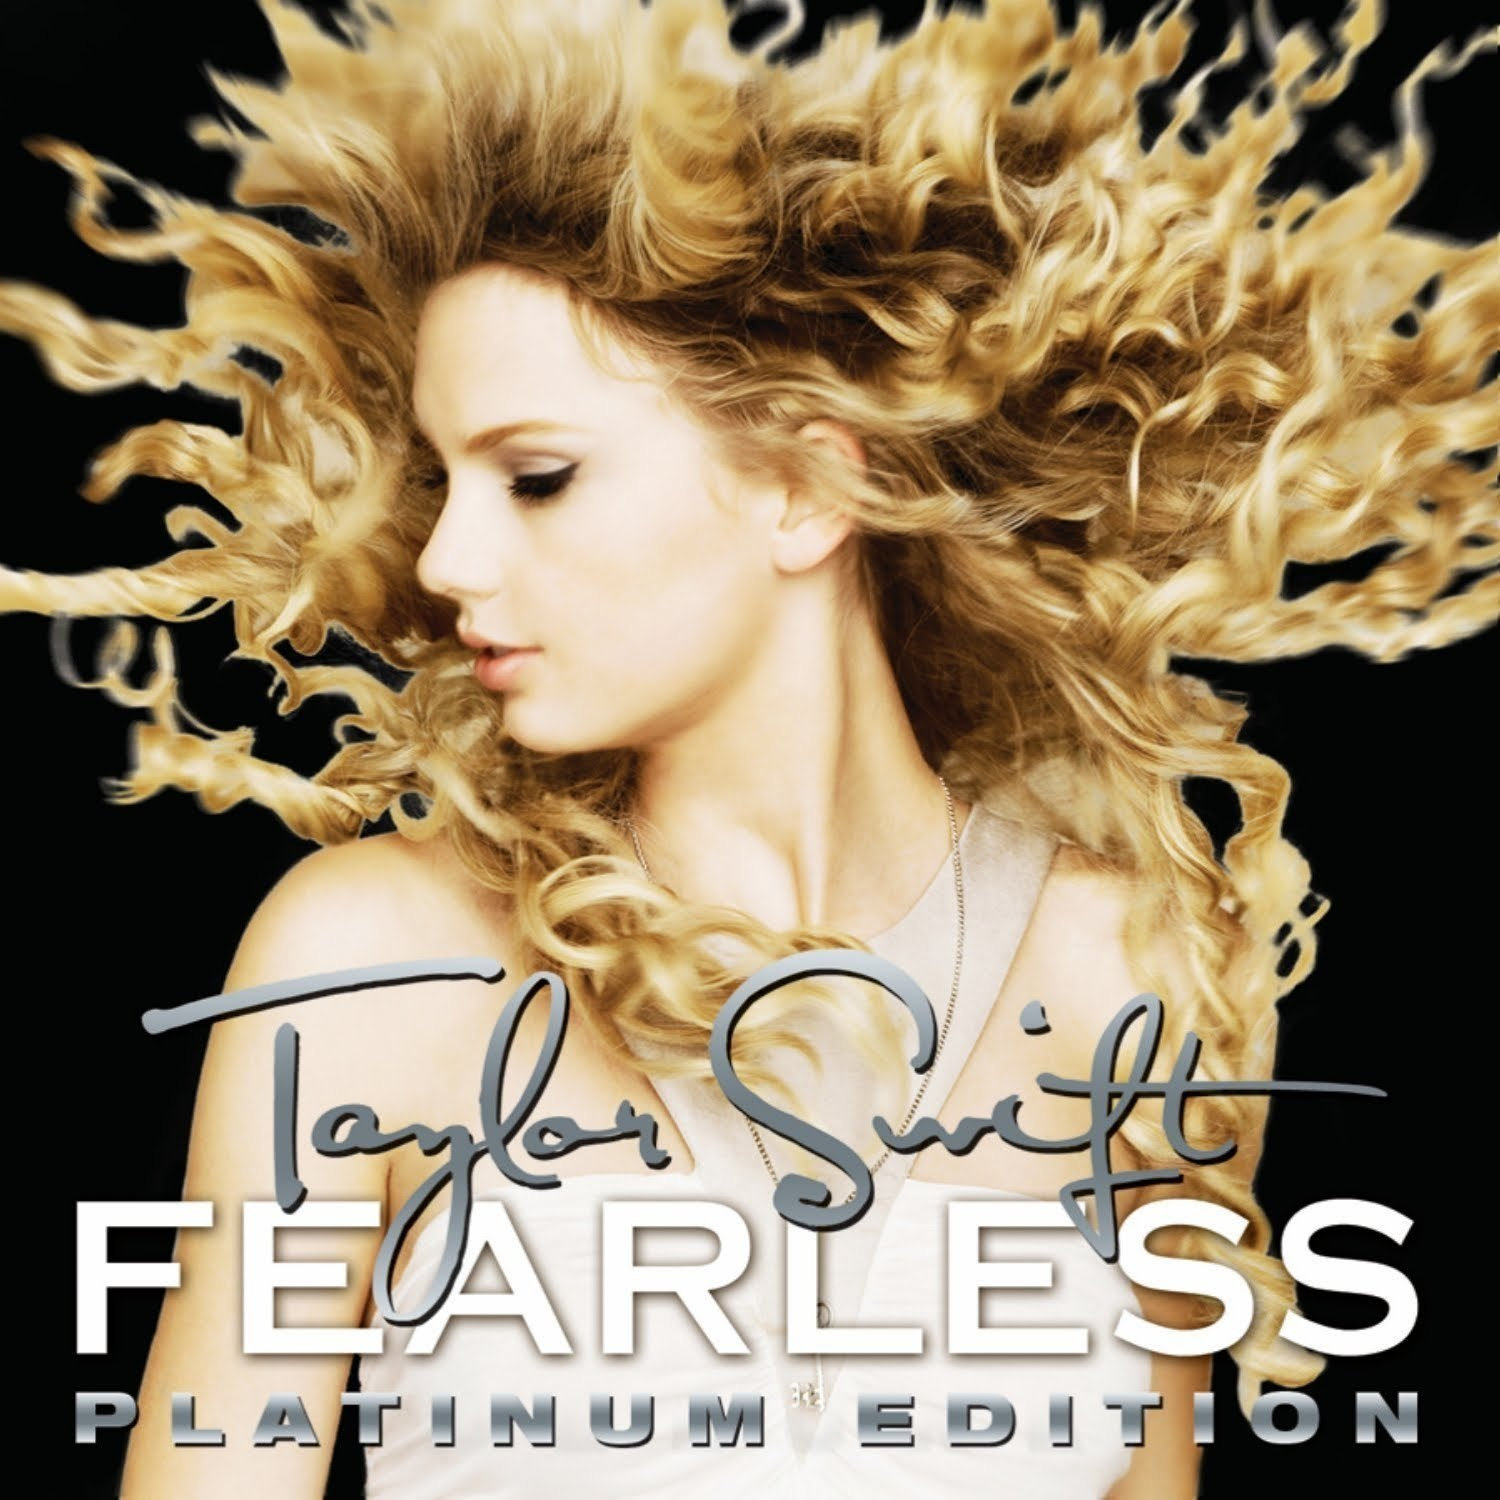 File:Fearless Platinum Edition.jpg